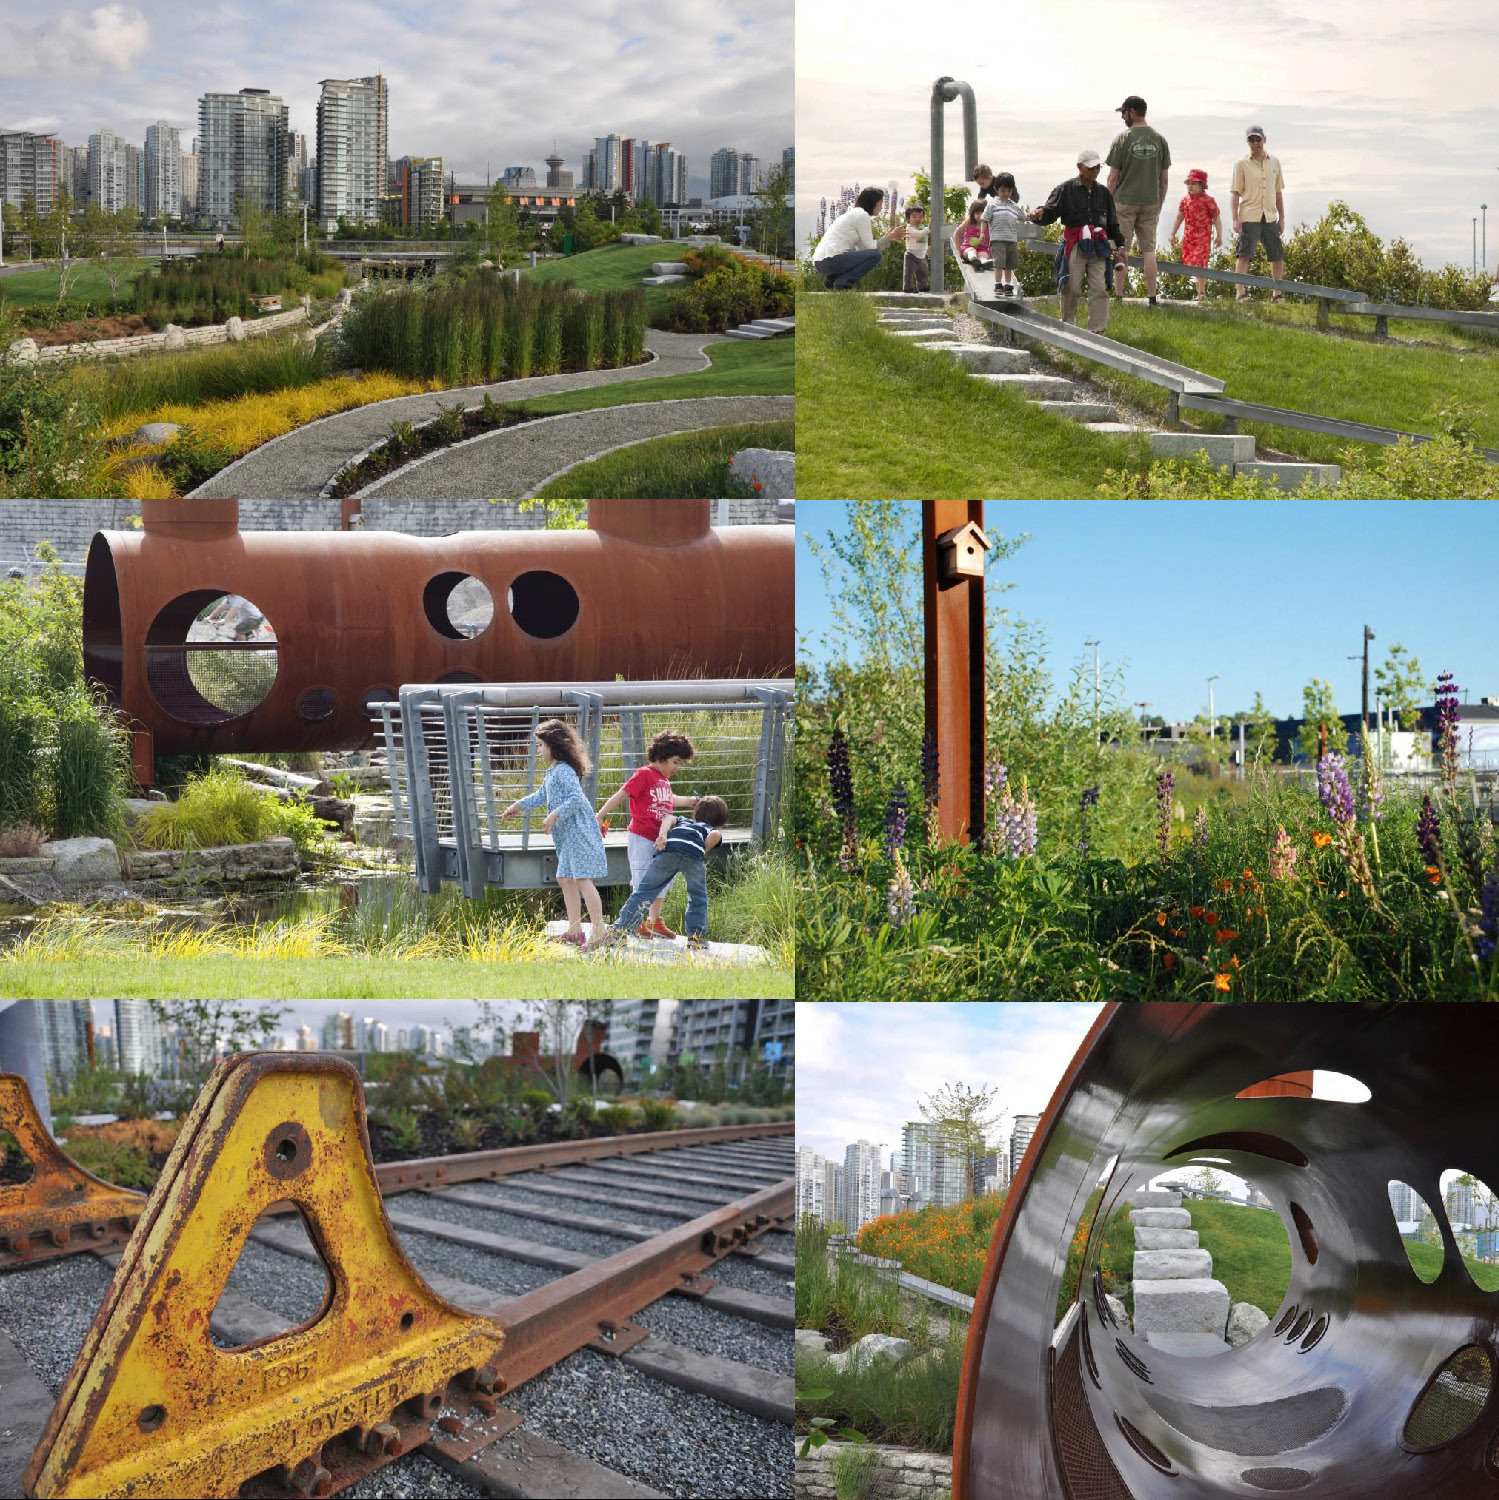 healthy city maps  design review of hinge park based on